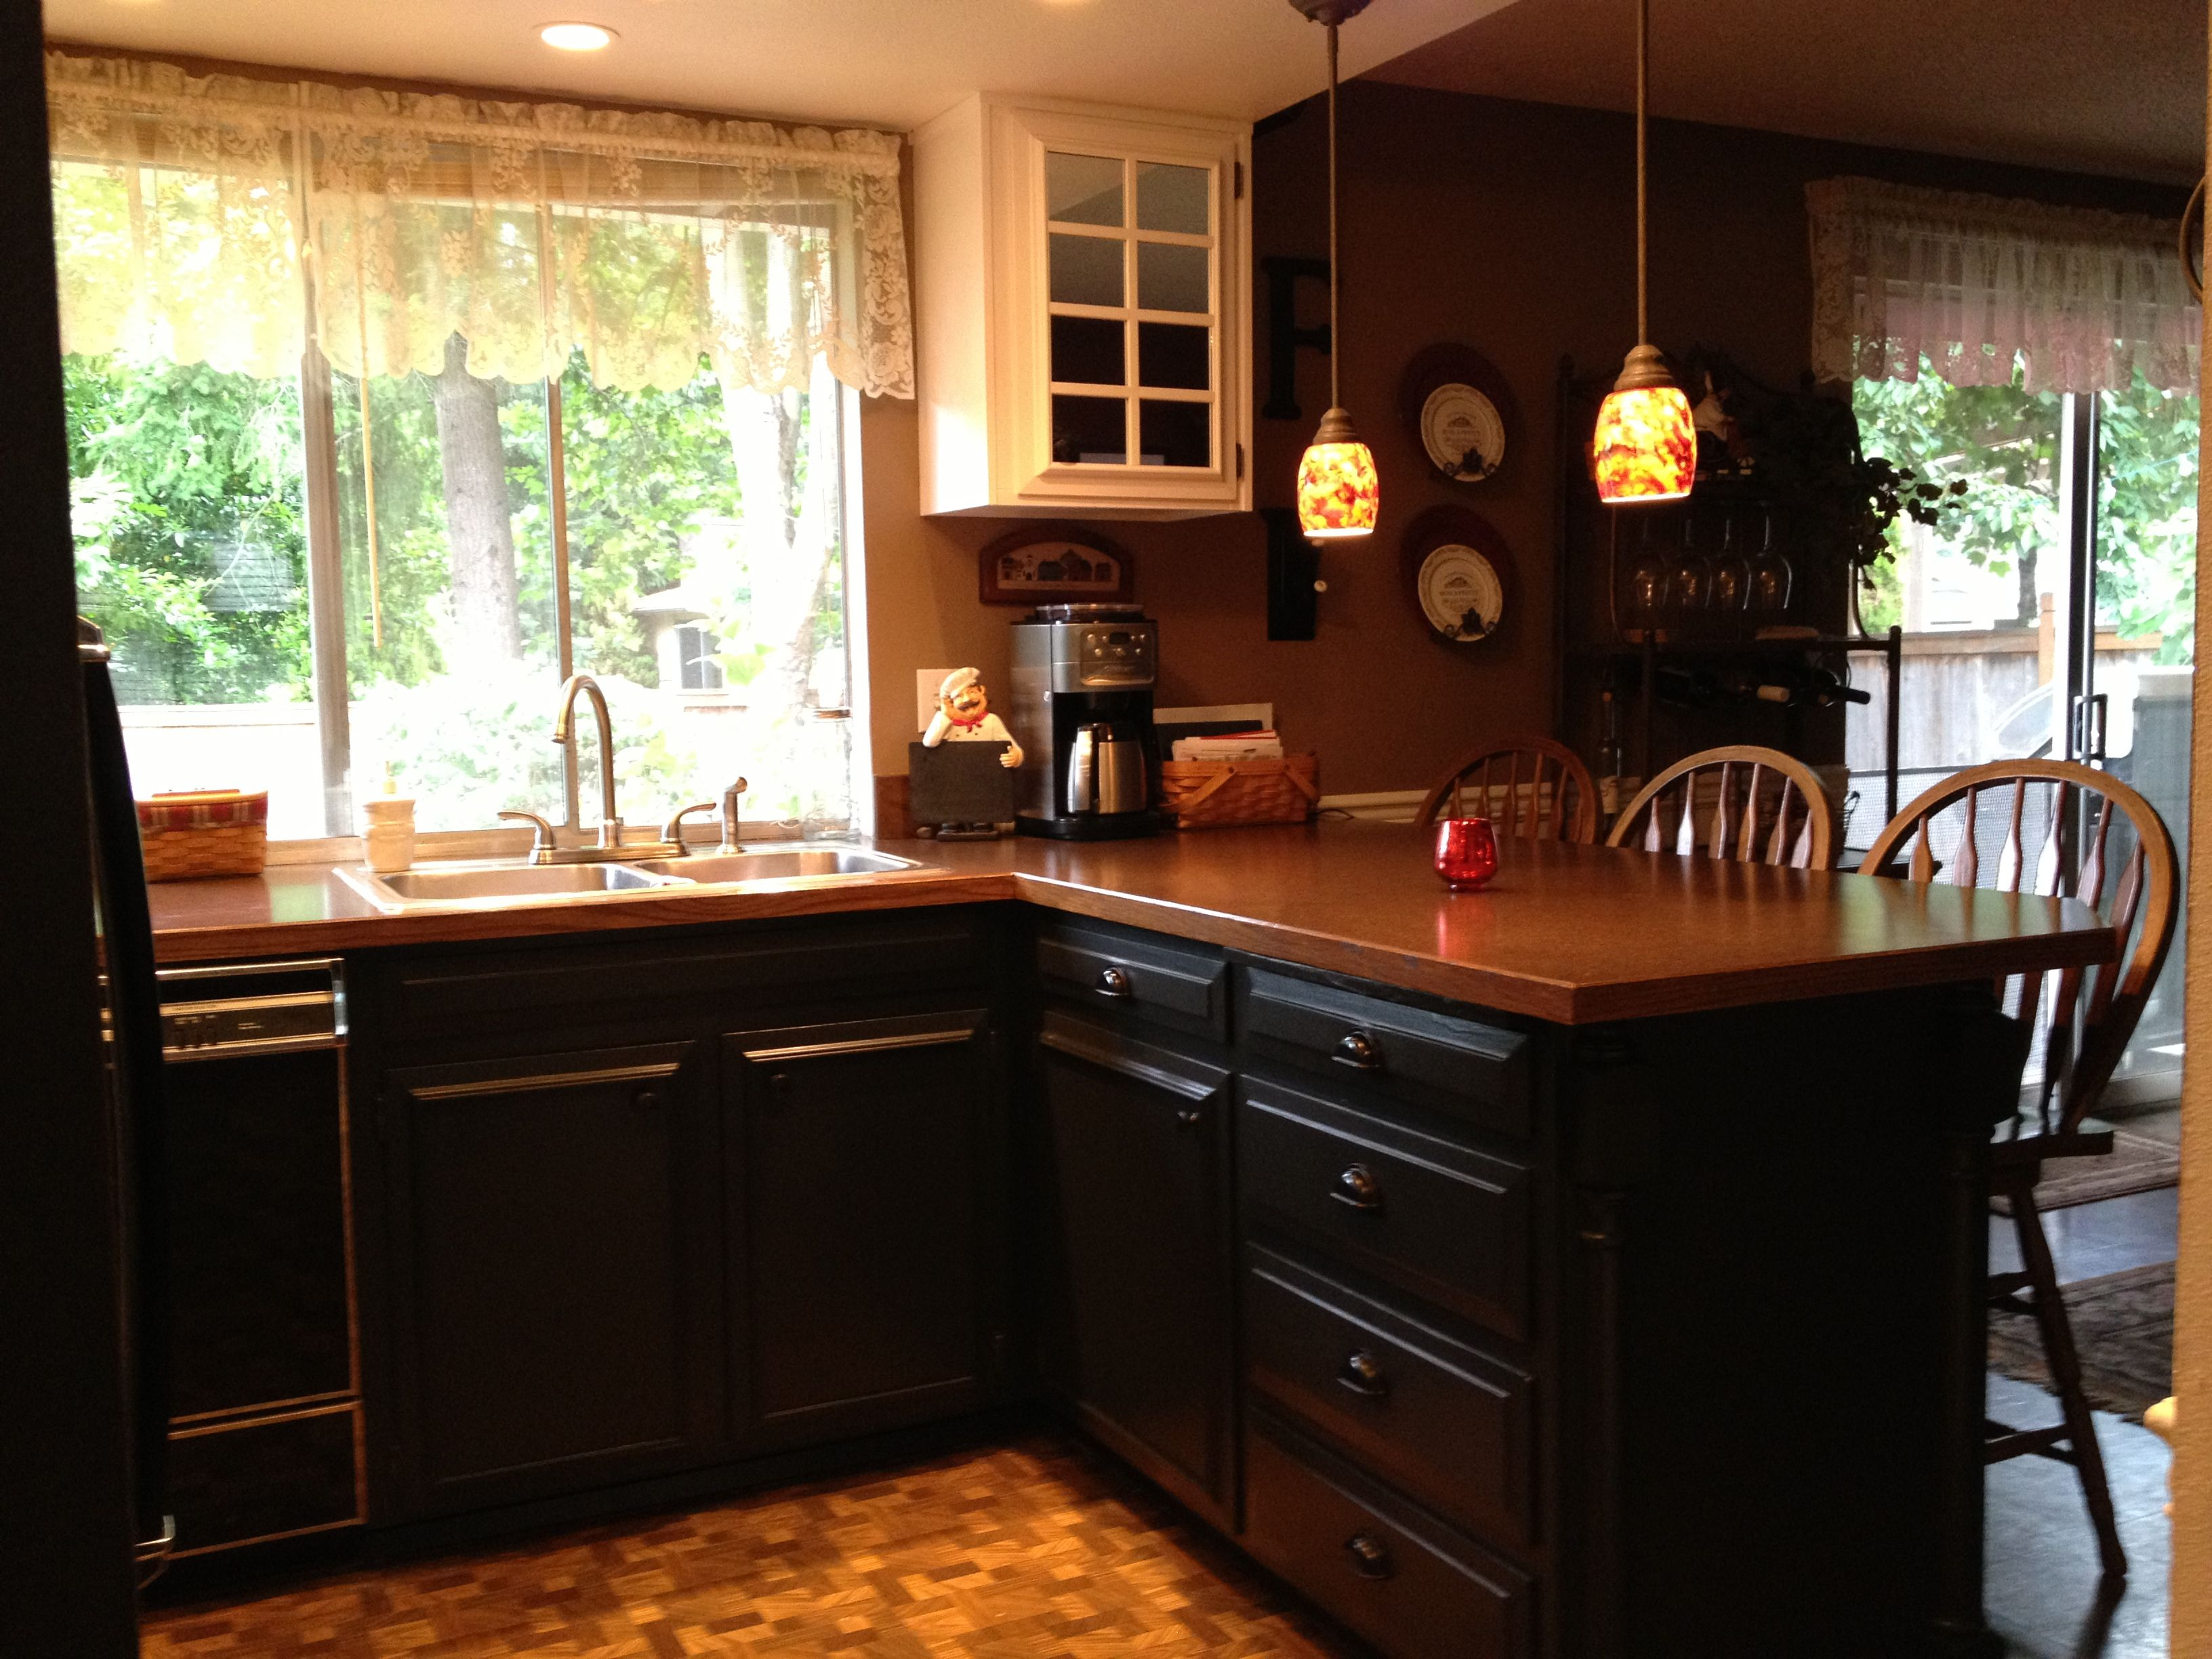 Behr Kitchen Cabinet Paint did it! painted my kitchen base cabinets black. love the dark